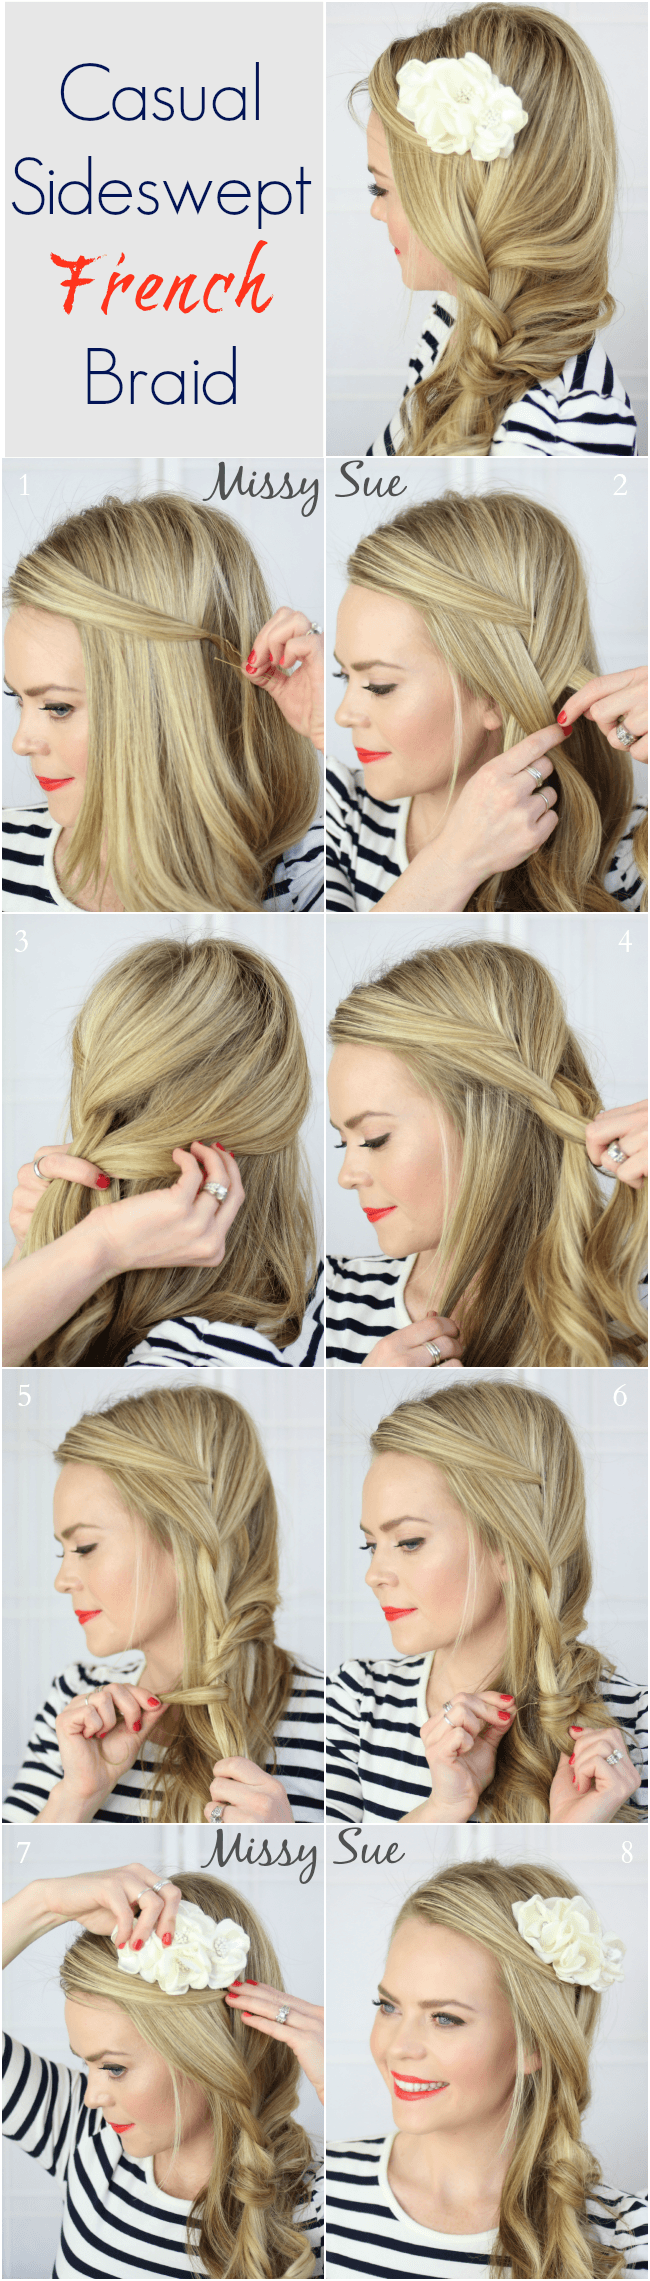 casual-french-braid-tutorial-missysue-blog